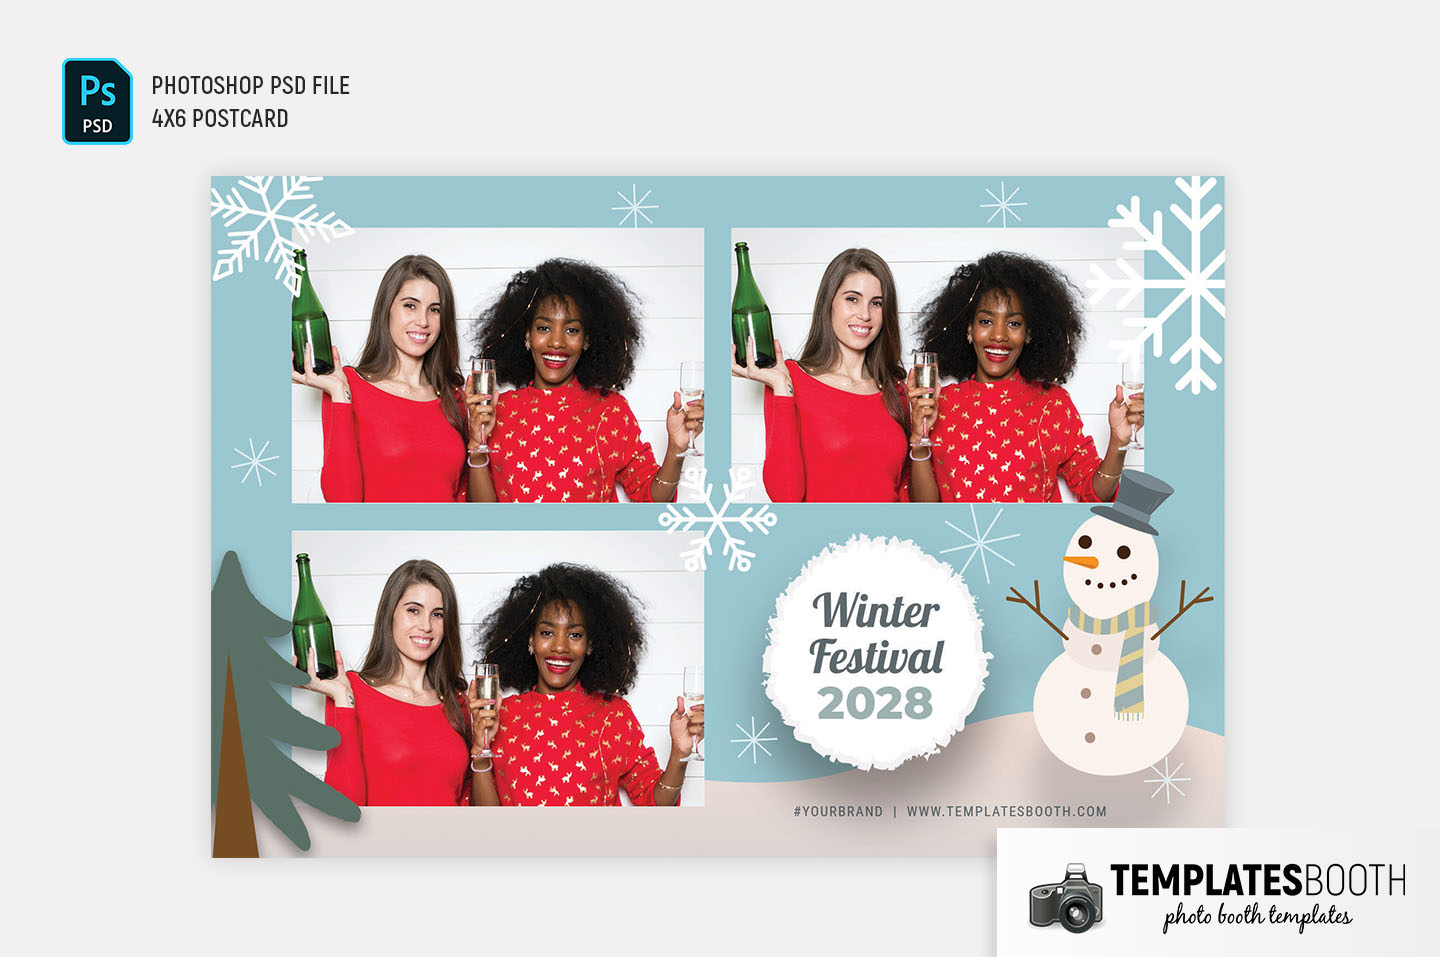 Winter Festival Photo Booth Template (4x6 postcard)